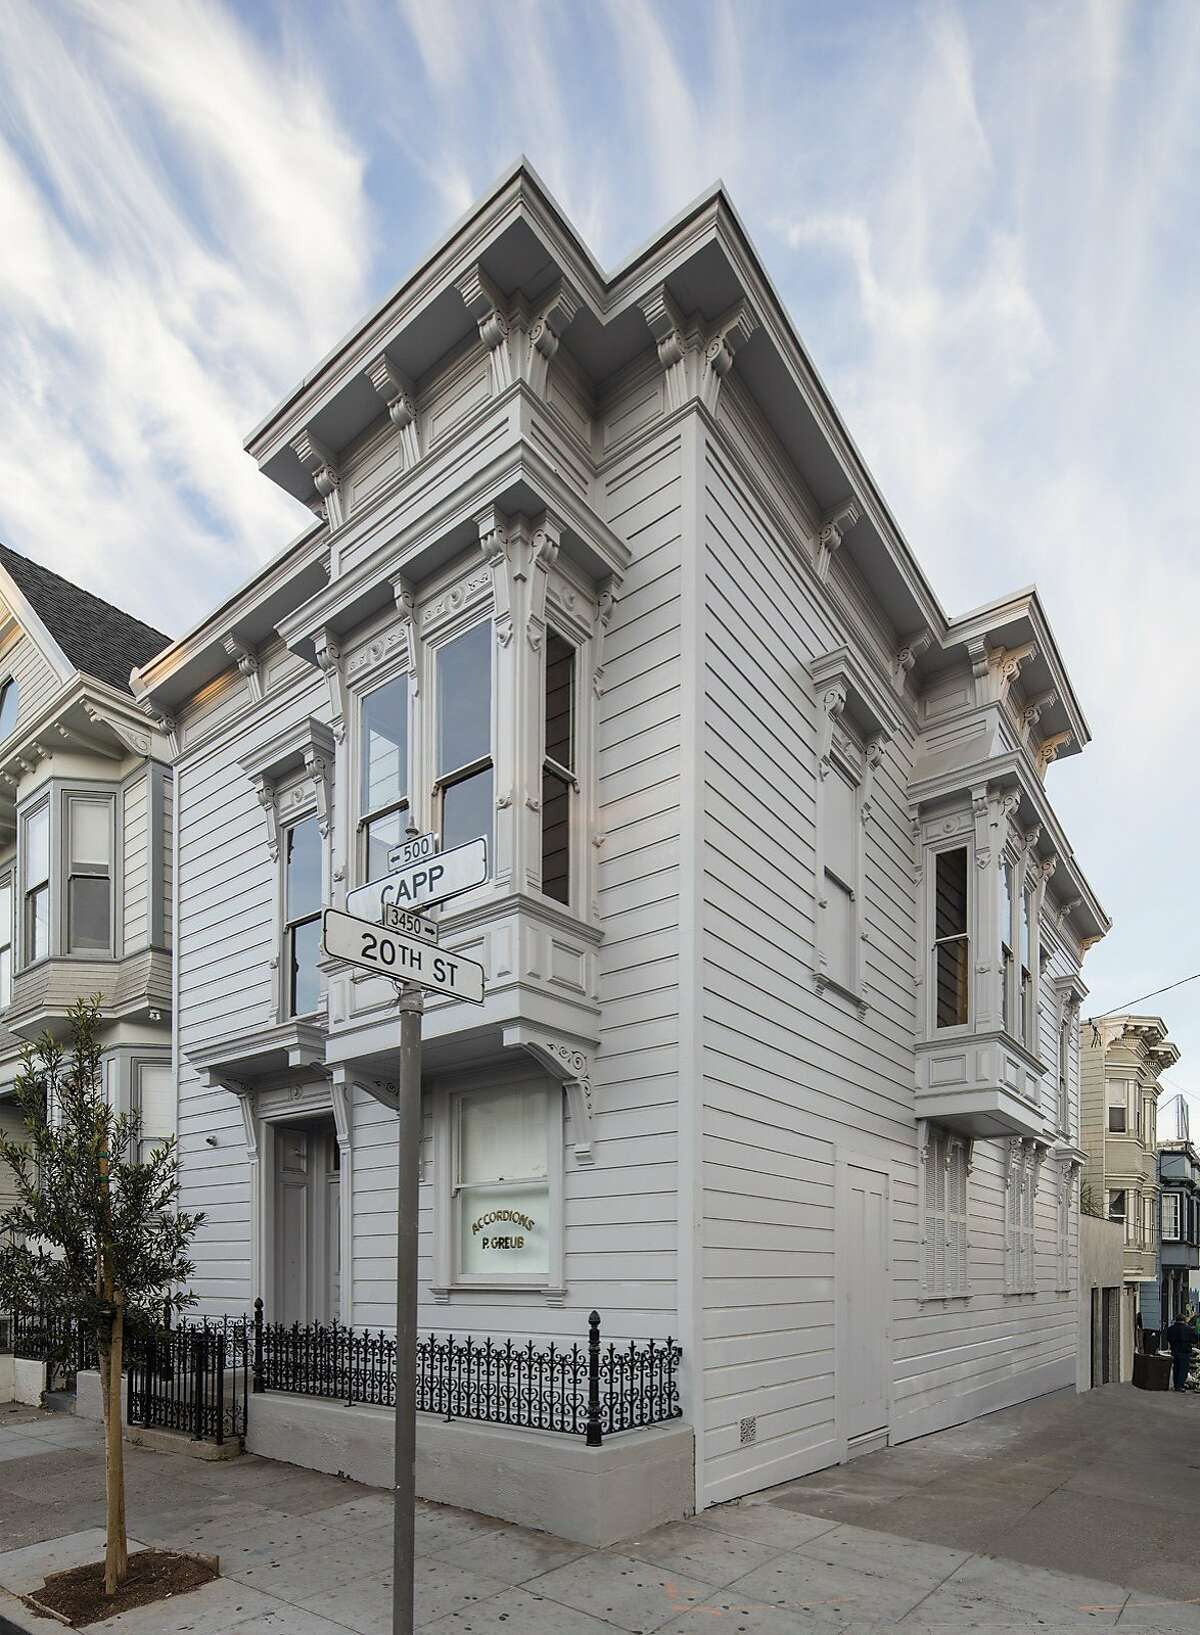 500 Capp Street, San Francisco: Opens Jan. 15, 2016. To take in the environment artist David Ireland (1930-2009) meticulously made of his house over 30 years might be a religious experience. Certainly, he was a guru to many artists and others in San Francisco. His career as proprietor of a store offering skulls and hides, and his seven-year stint as a safari guide in Africa likely gave him an understanding of charms and talismans. This he combined with a devotion to his own brand of conceptual art and a zen-like devotion to life as a carefully considered balance of action and stasis. The house will be open to the public intermittently and by appointment.http://500cappstreet.org